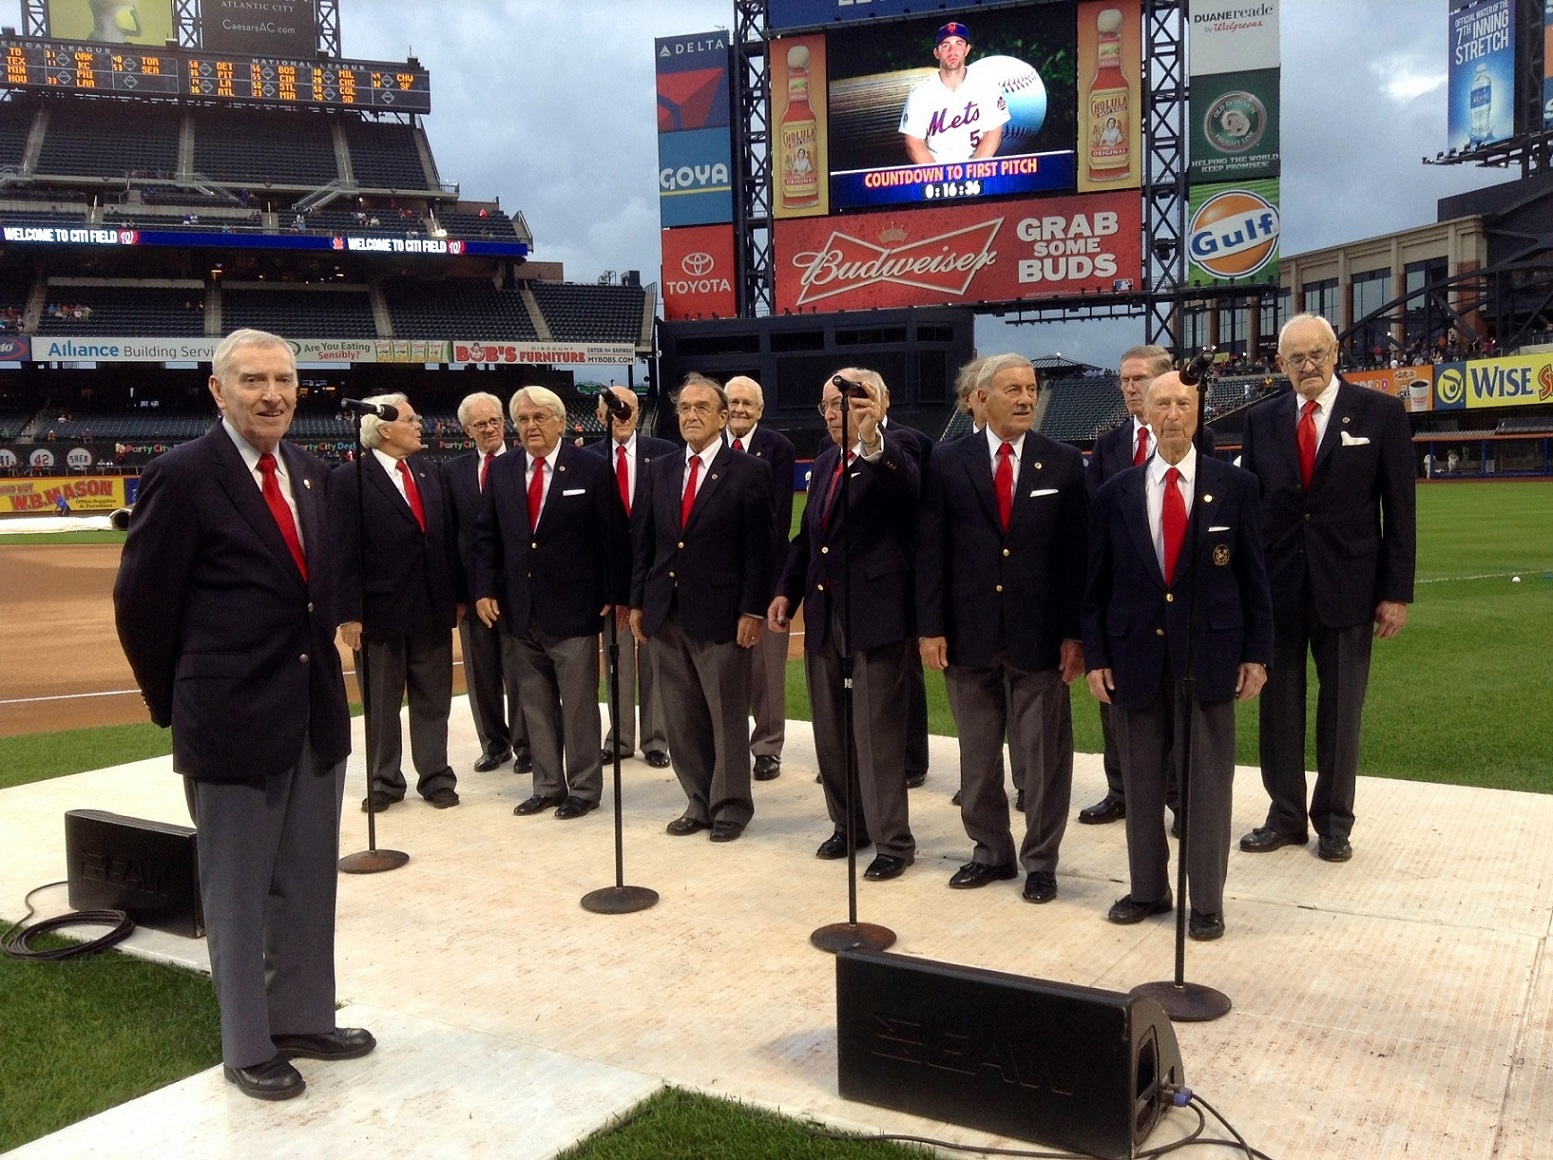 Performance at Citi Field - National Anthem